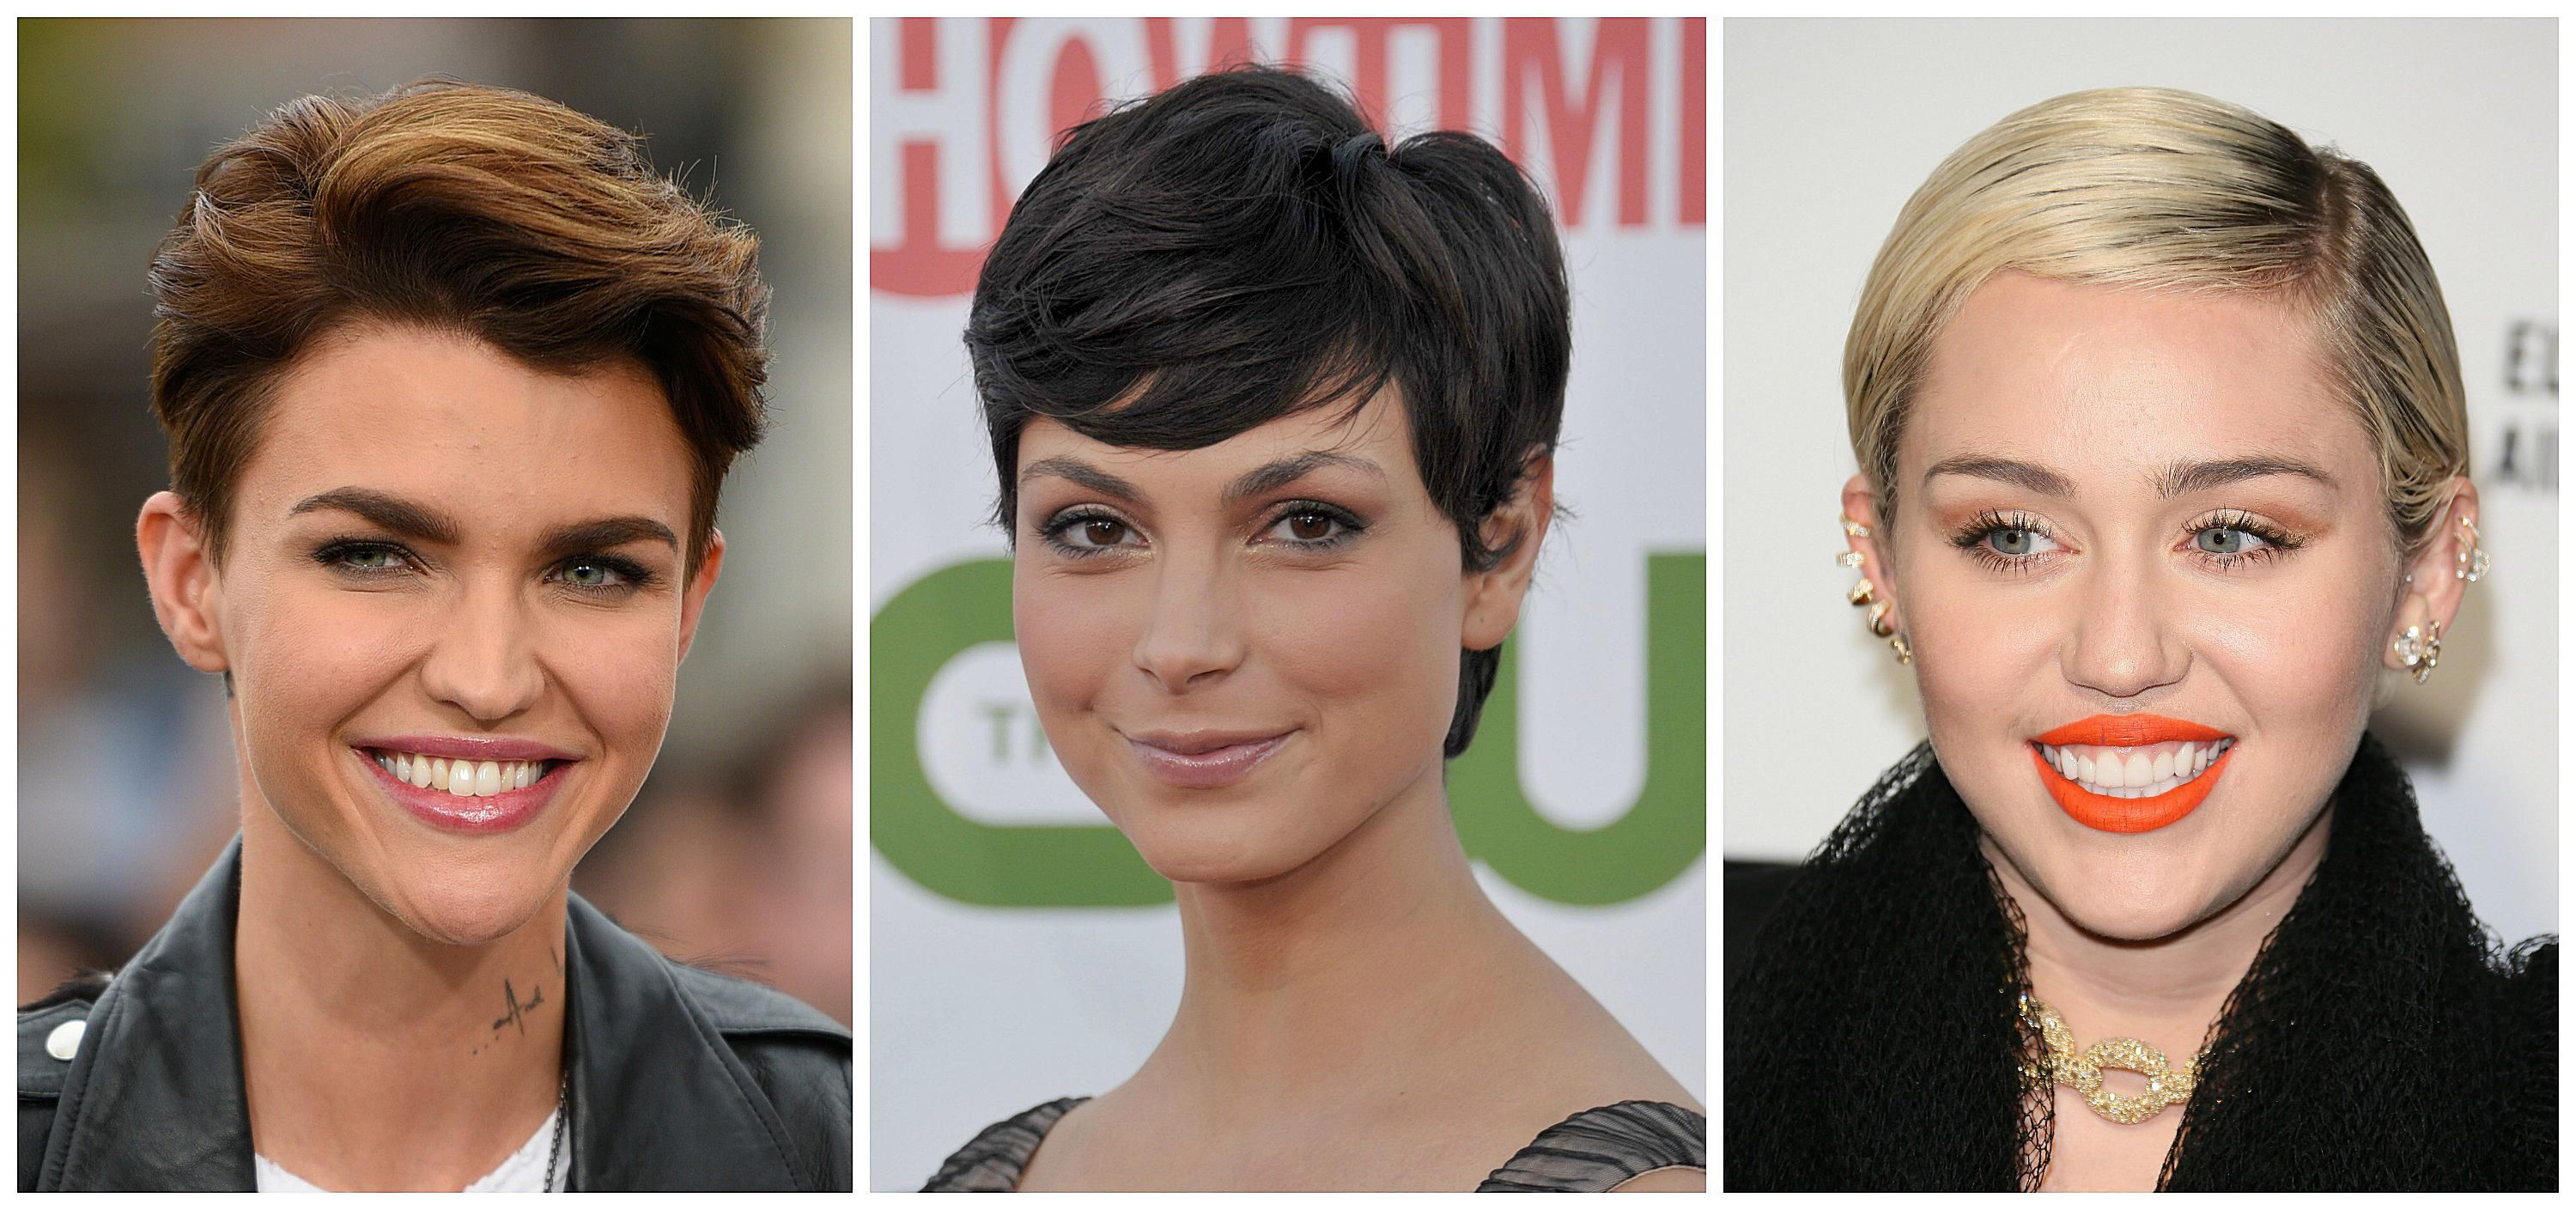 Short edgy hairstyles for women